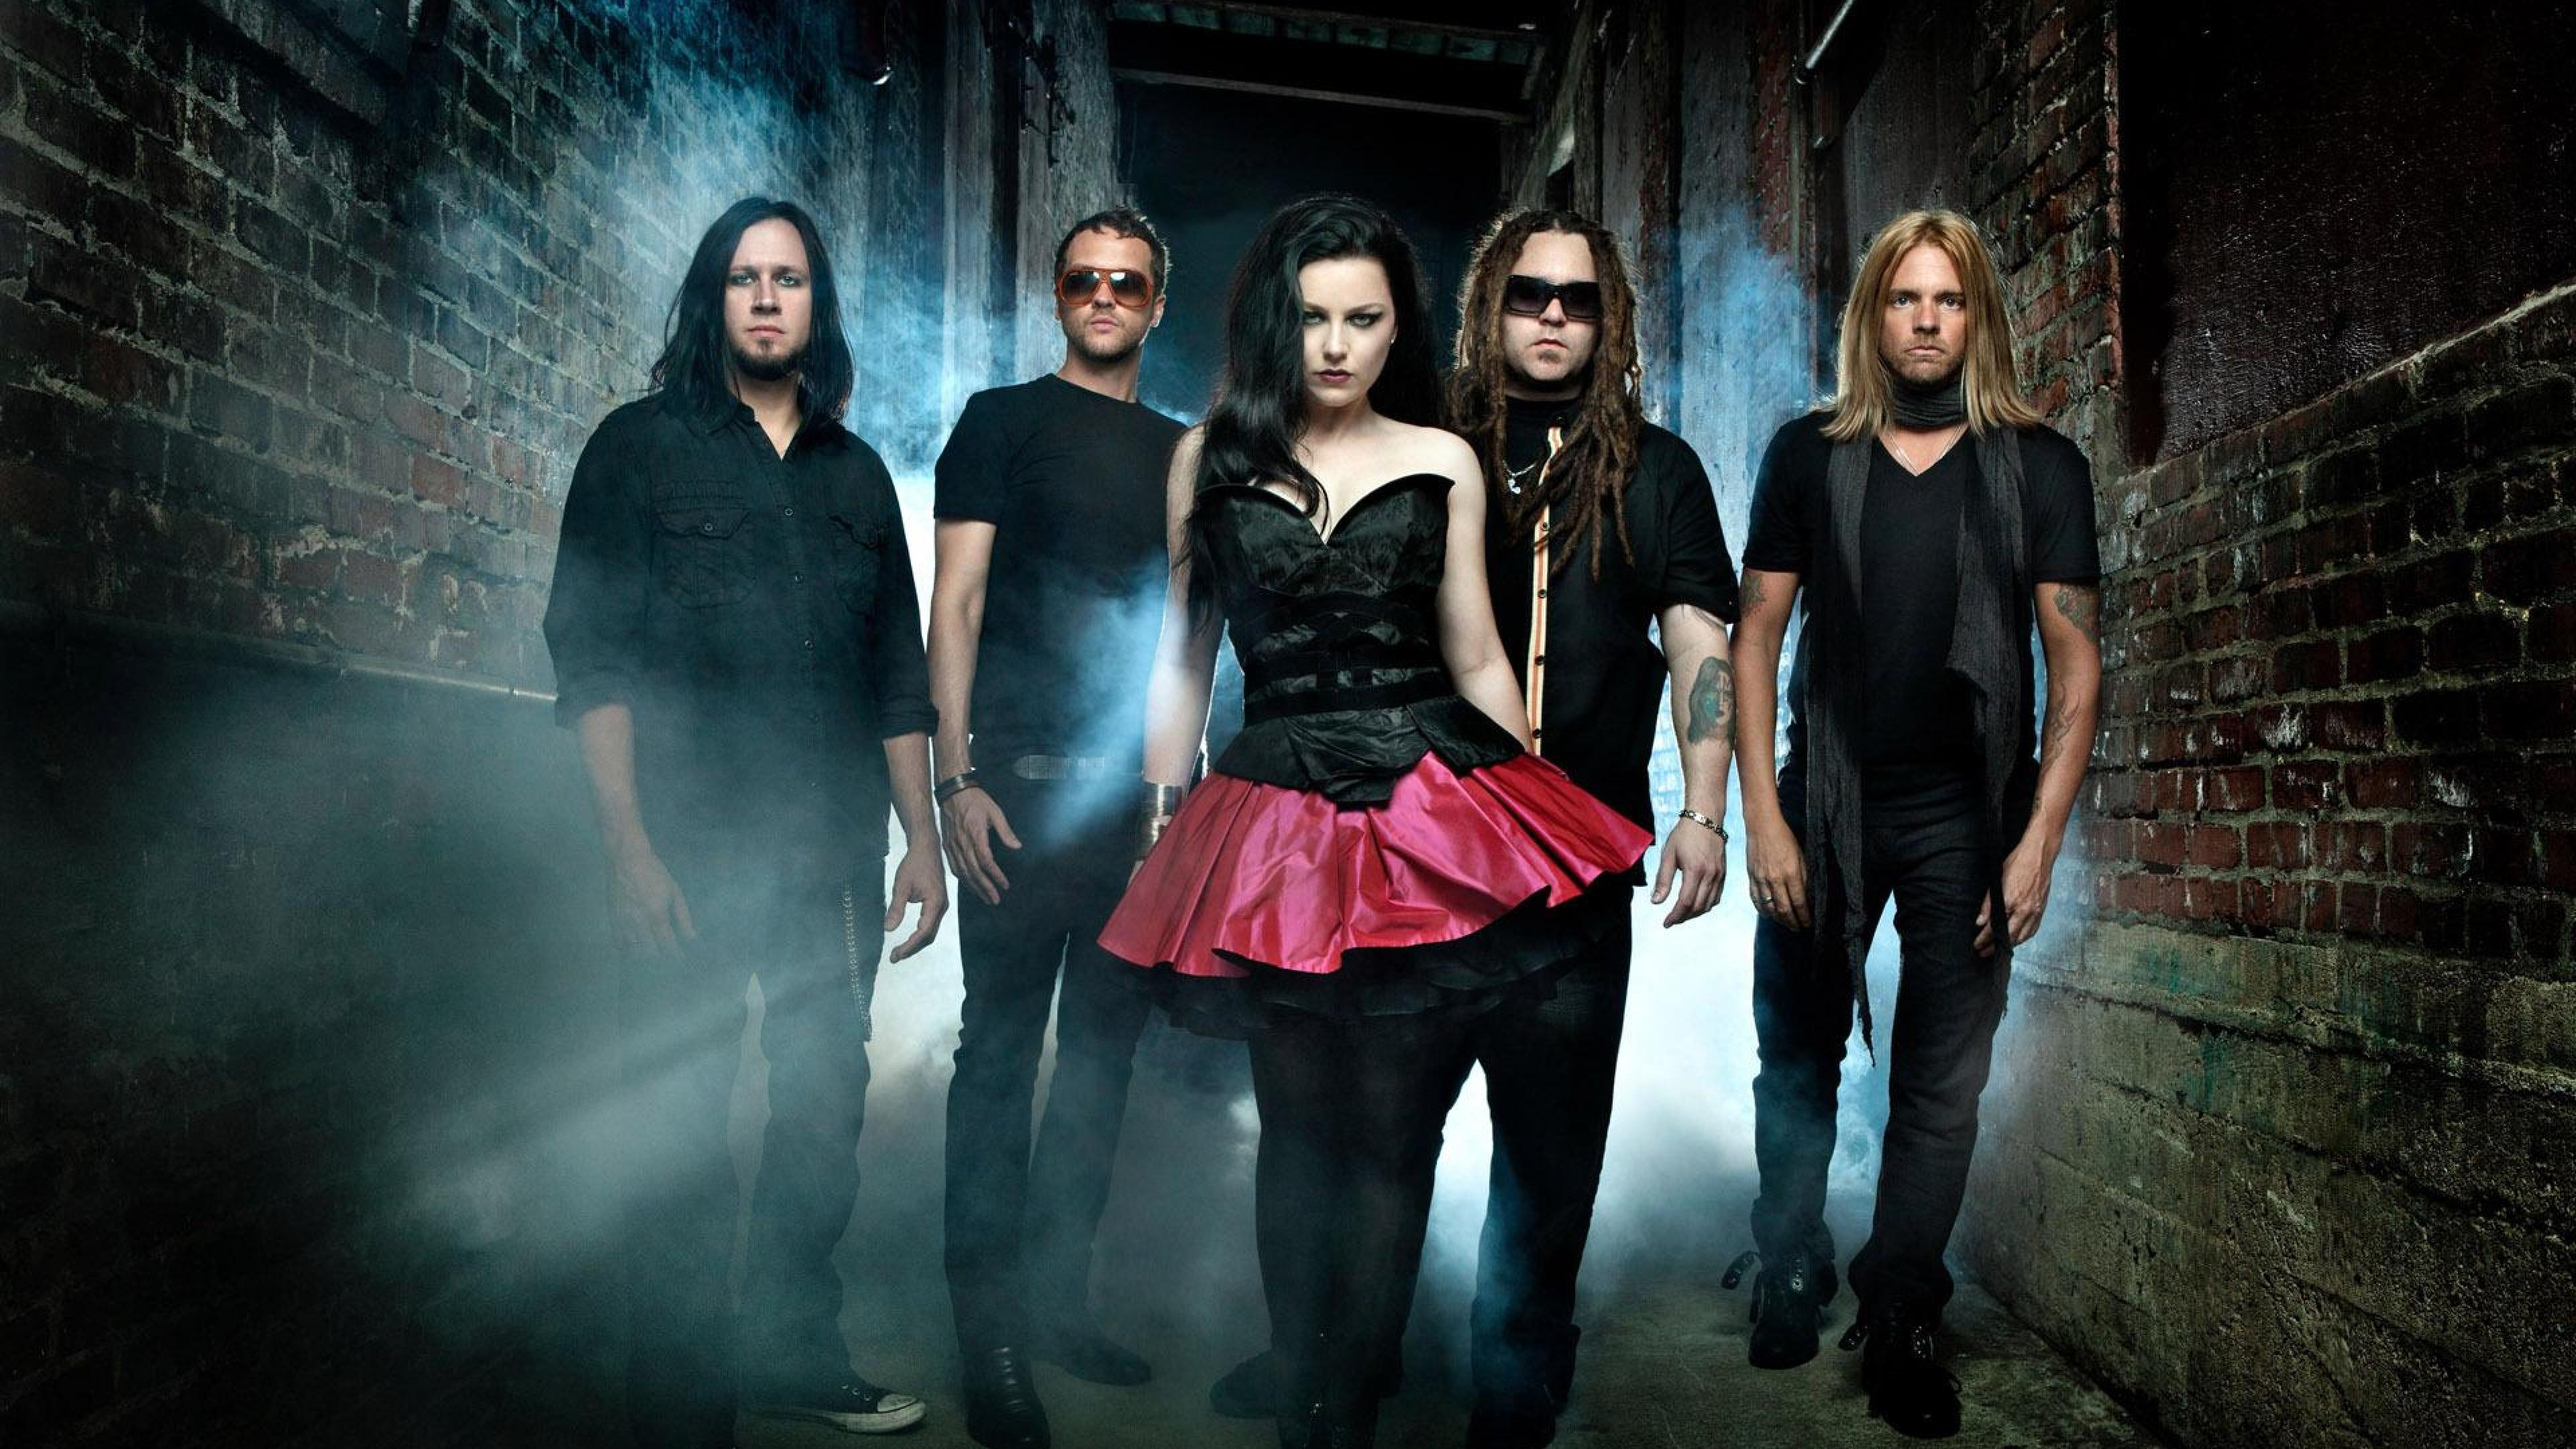 Evanescence Wallpapers HD 3840x2160